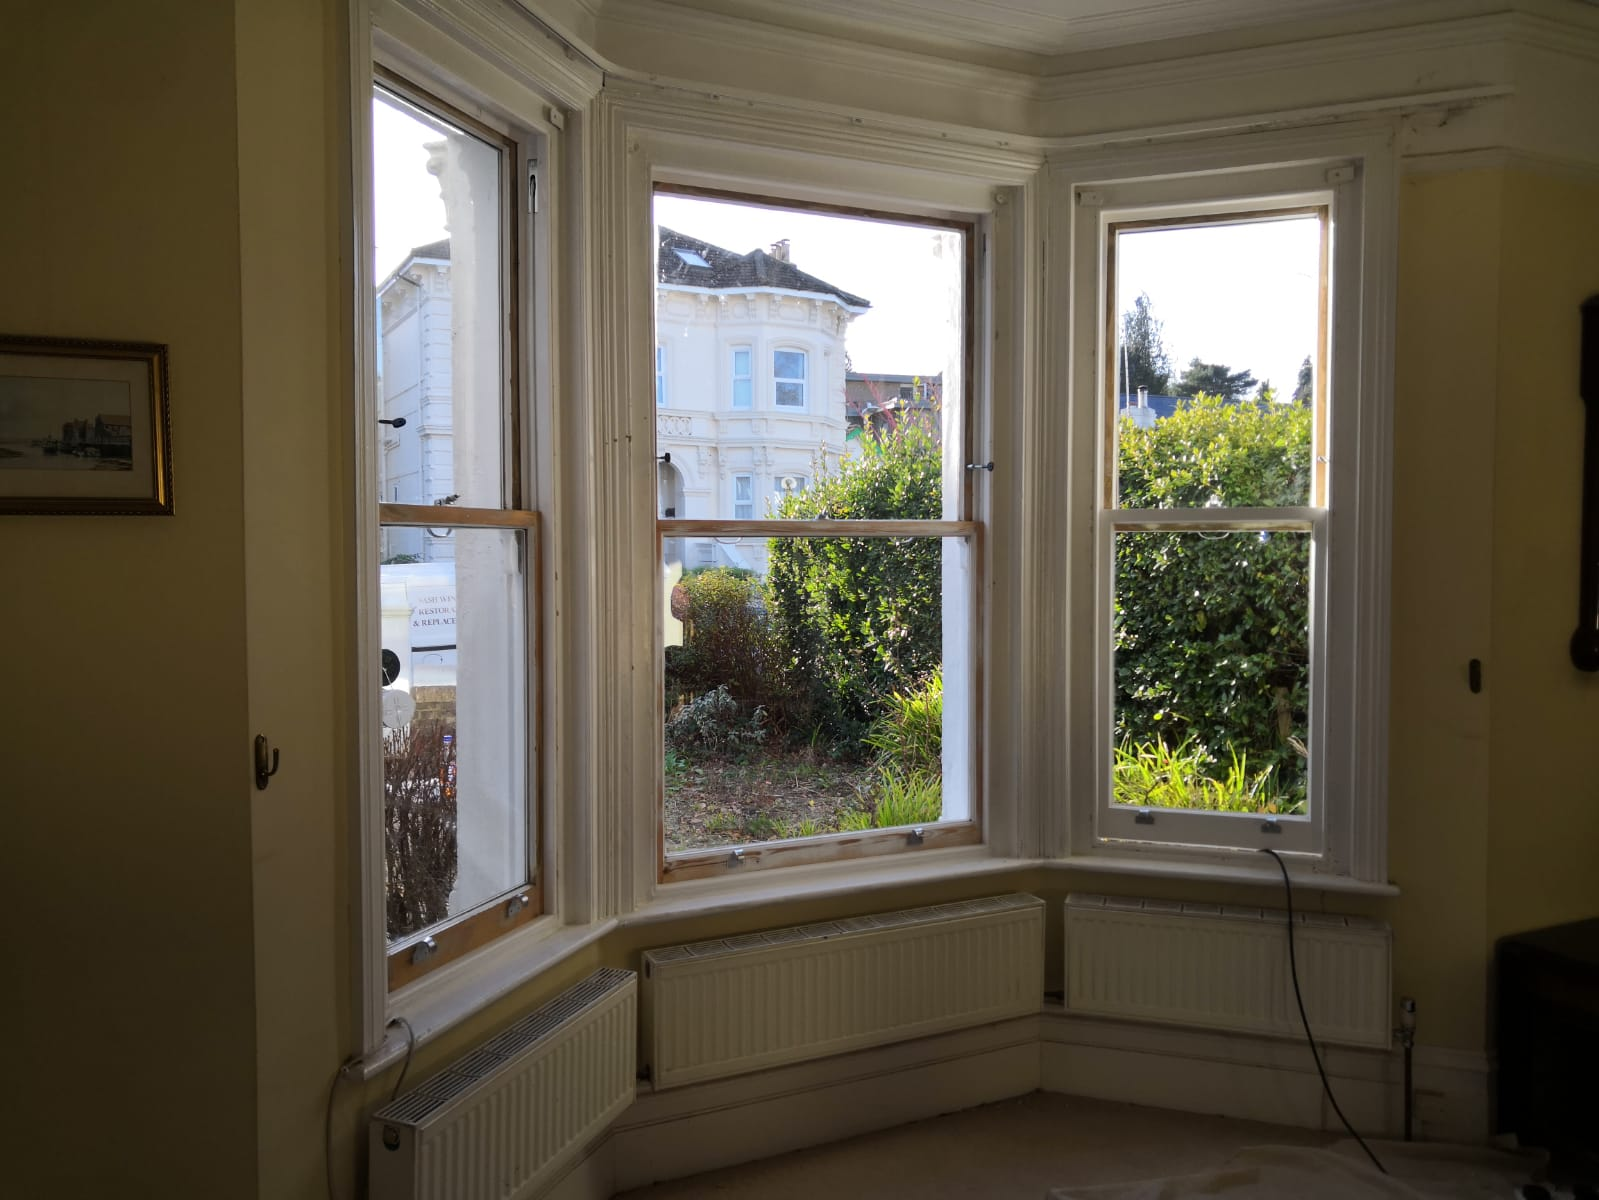 Slim double glazing + draught proofing